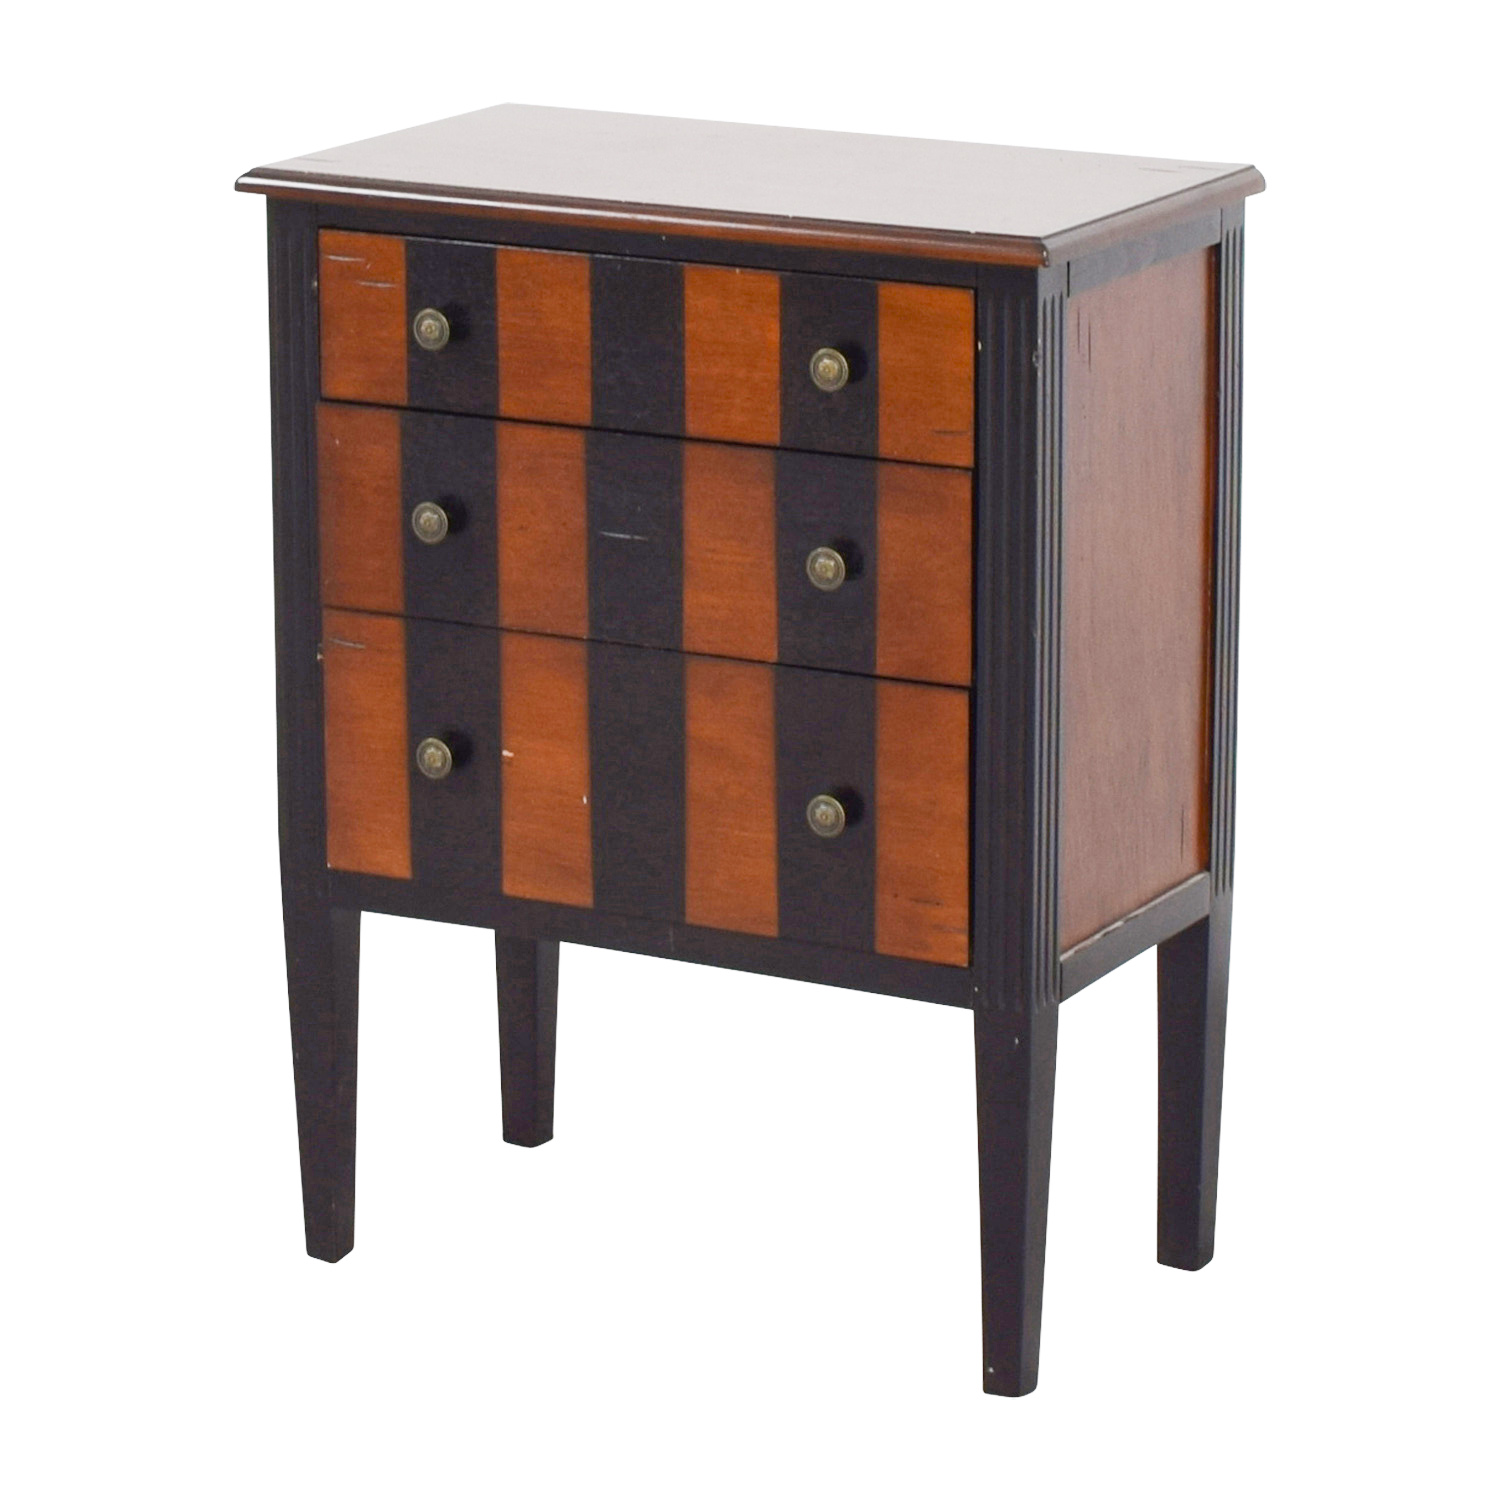 63 off pier 1 imports pier 1 imports striped side table. Black Bedroom Furniture Sets. Home Design Ideas